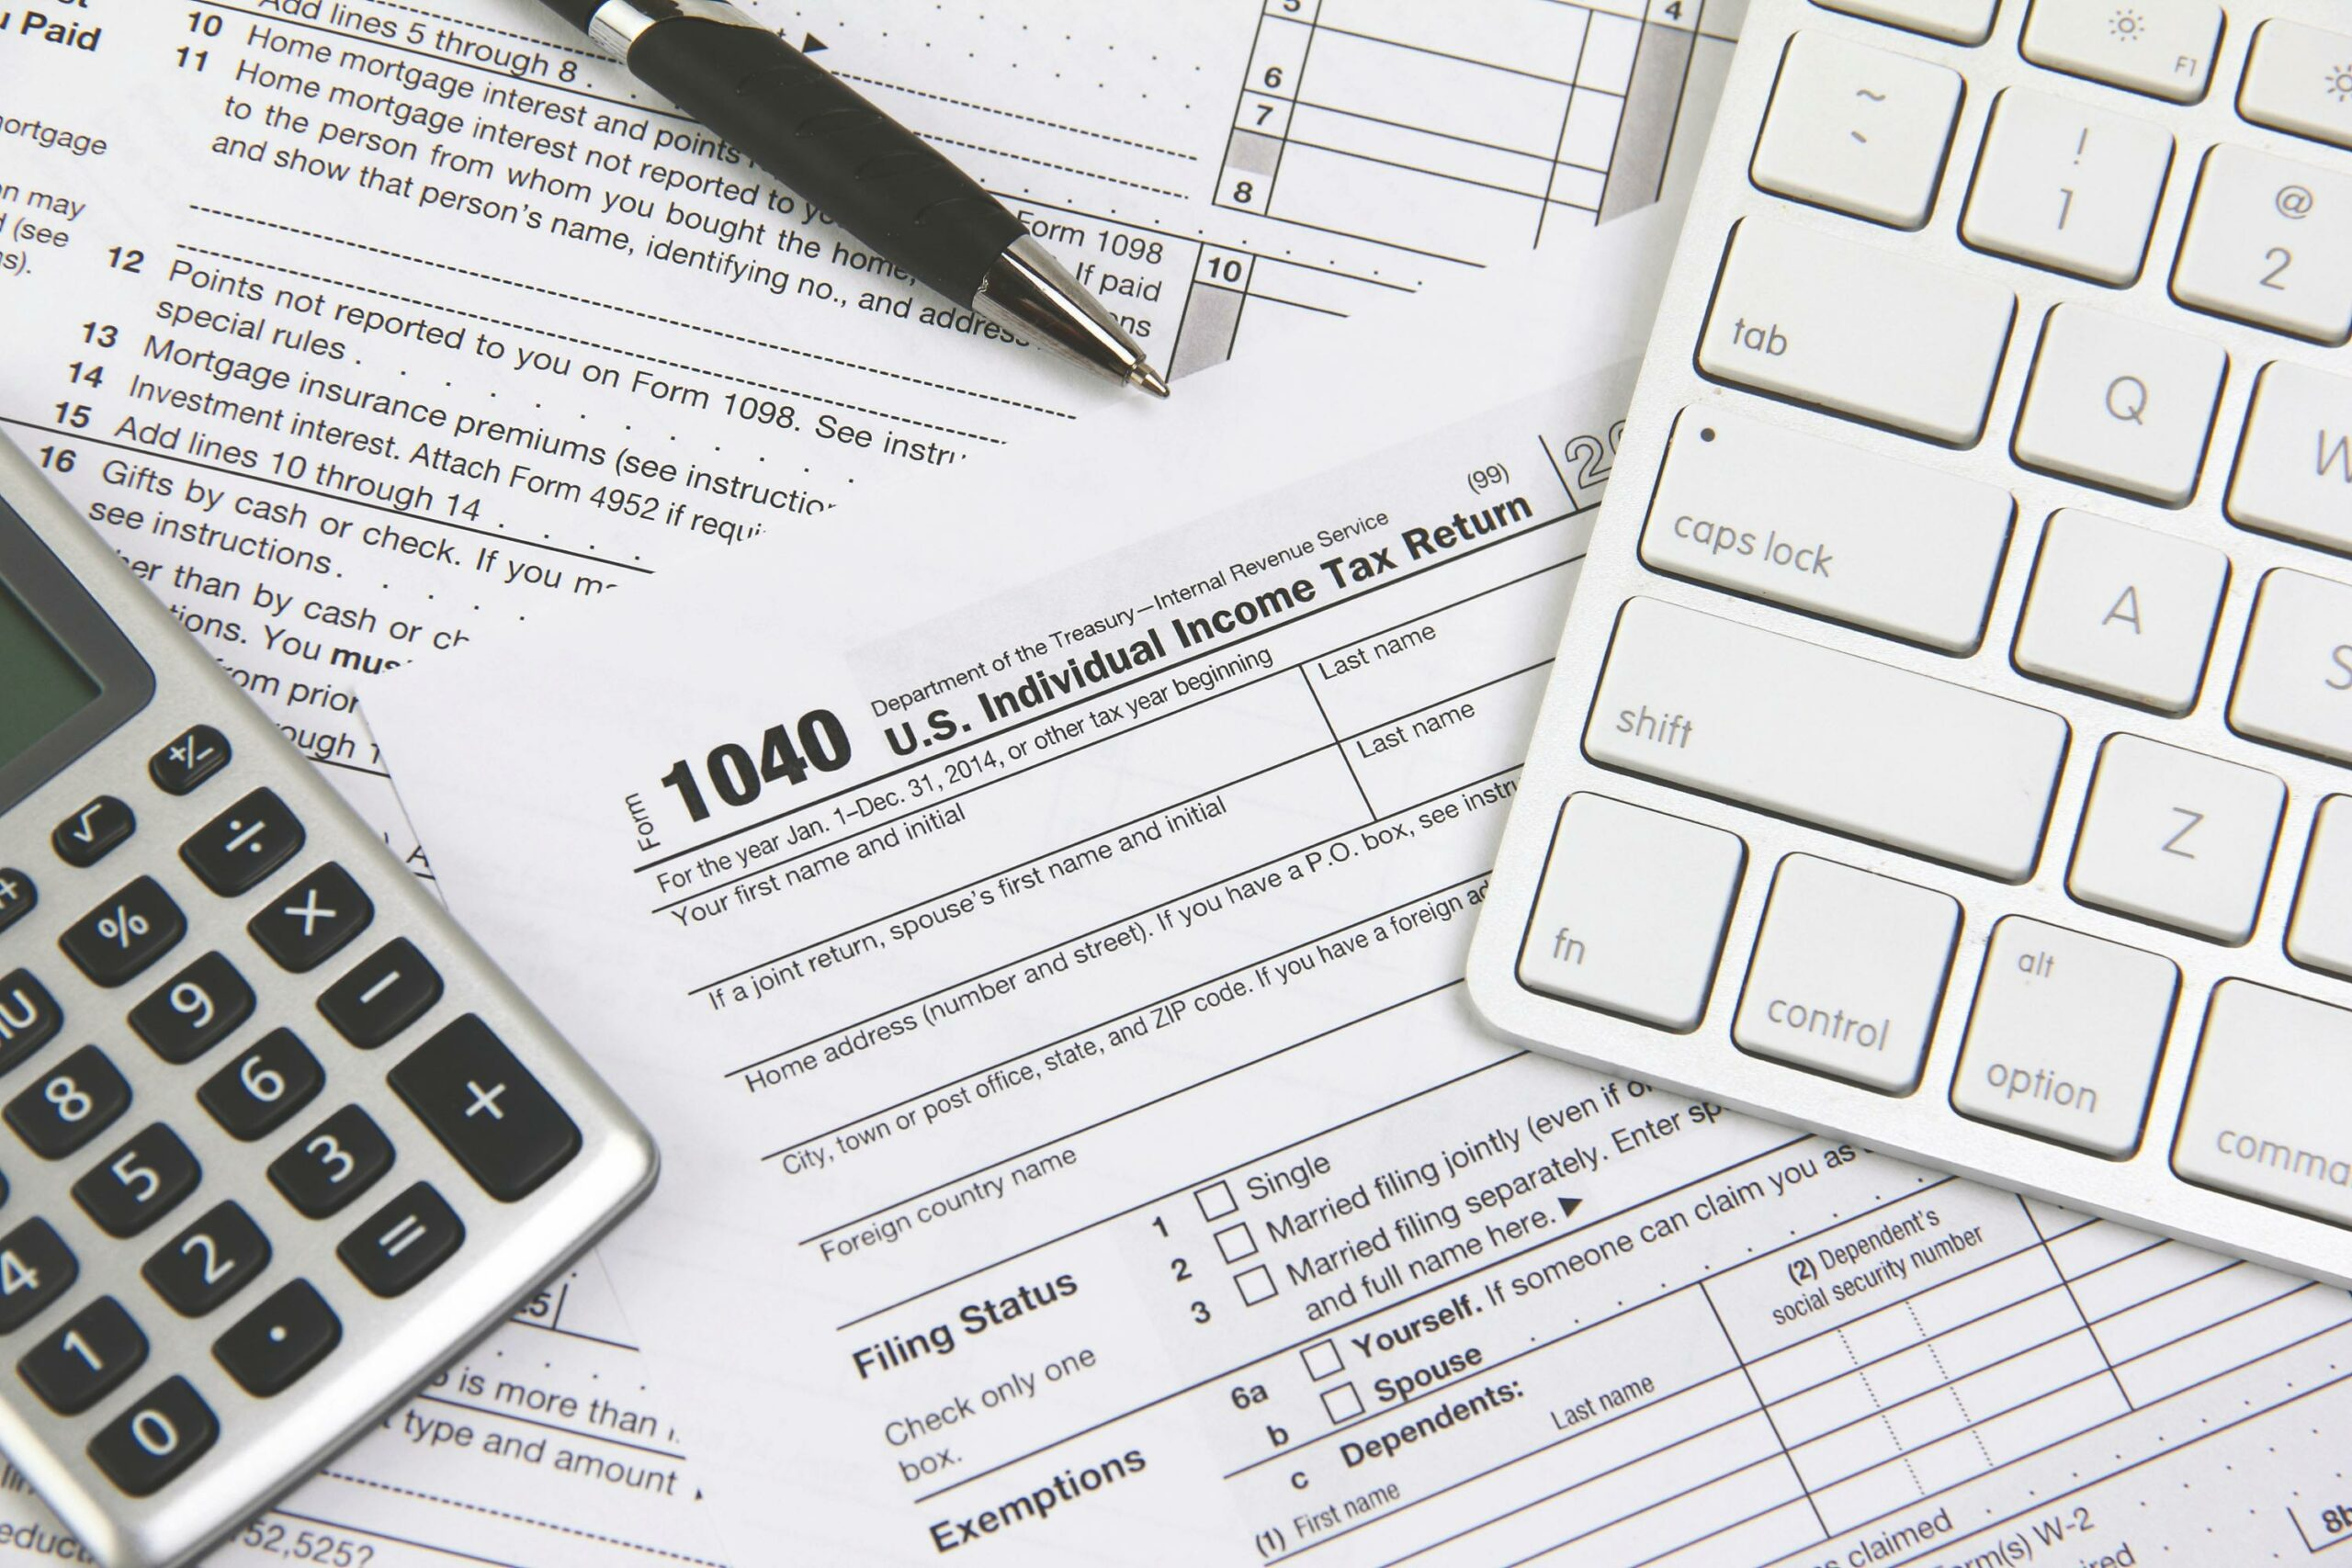 5 Tax Compliance Issues | Tax Compliance Services - Levy | Lauter LLP